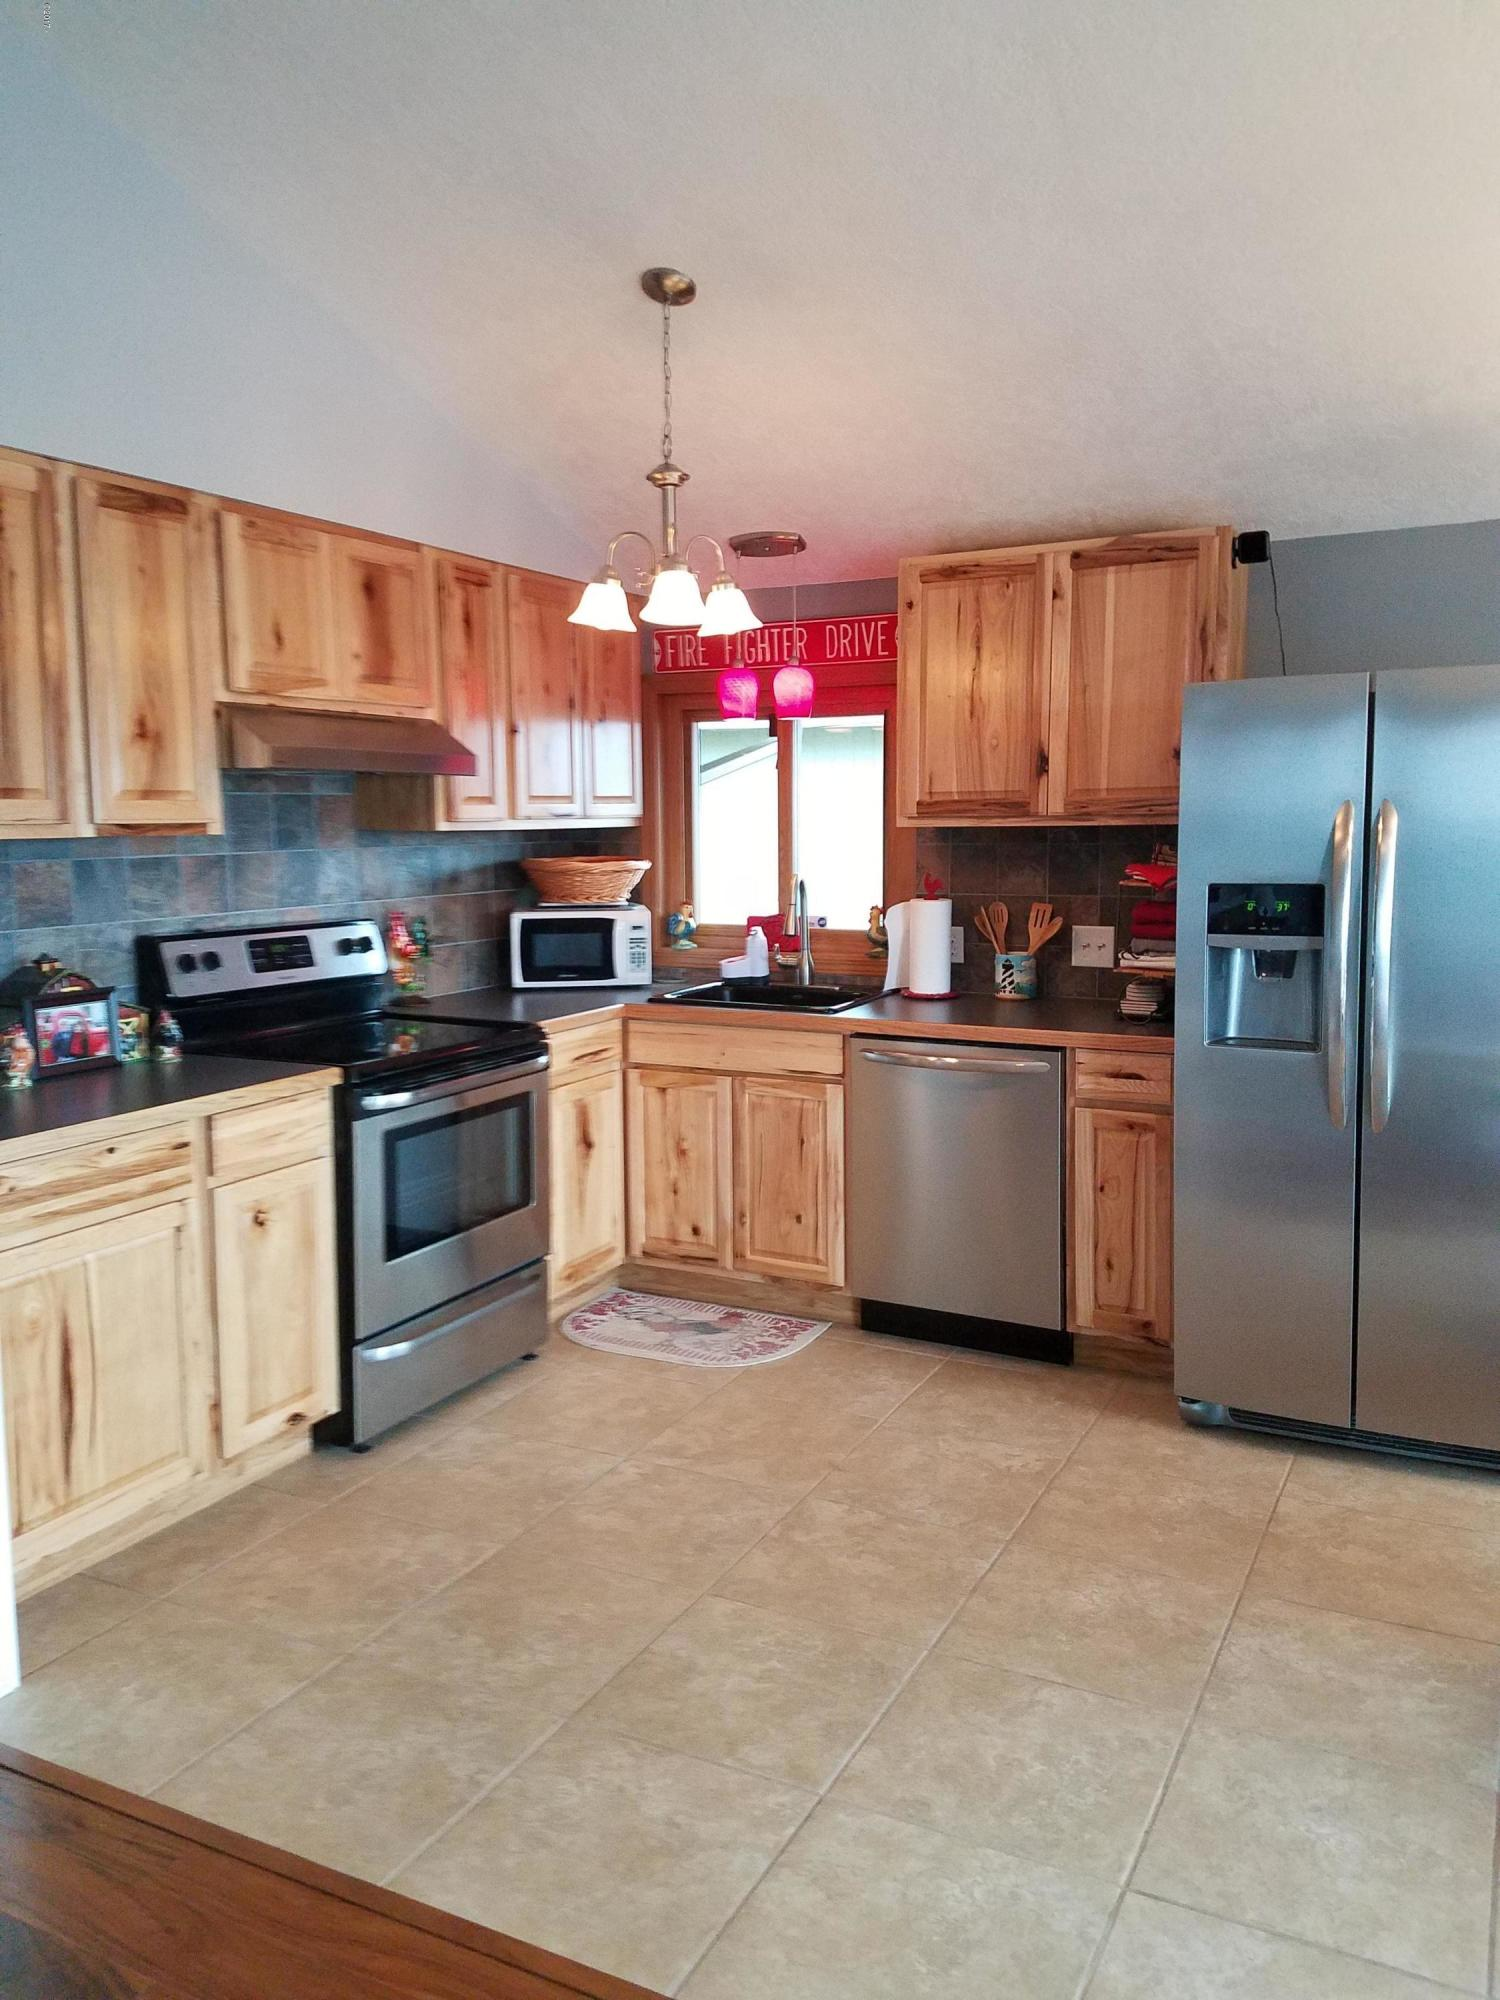 14895 N Hwy 101, Rockaway Beach, OR 97136 - Fully Remodeled Kitchen